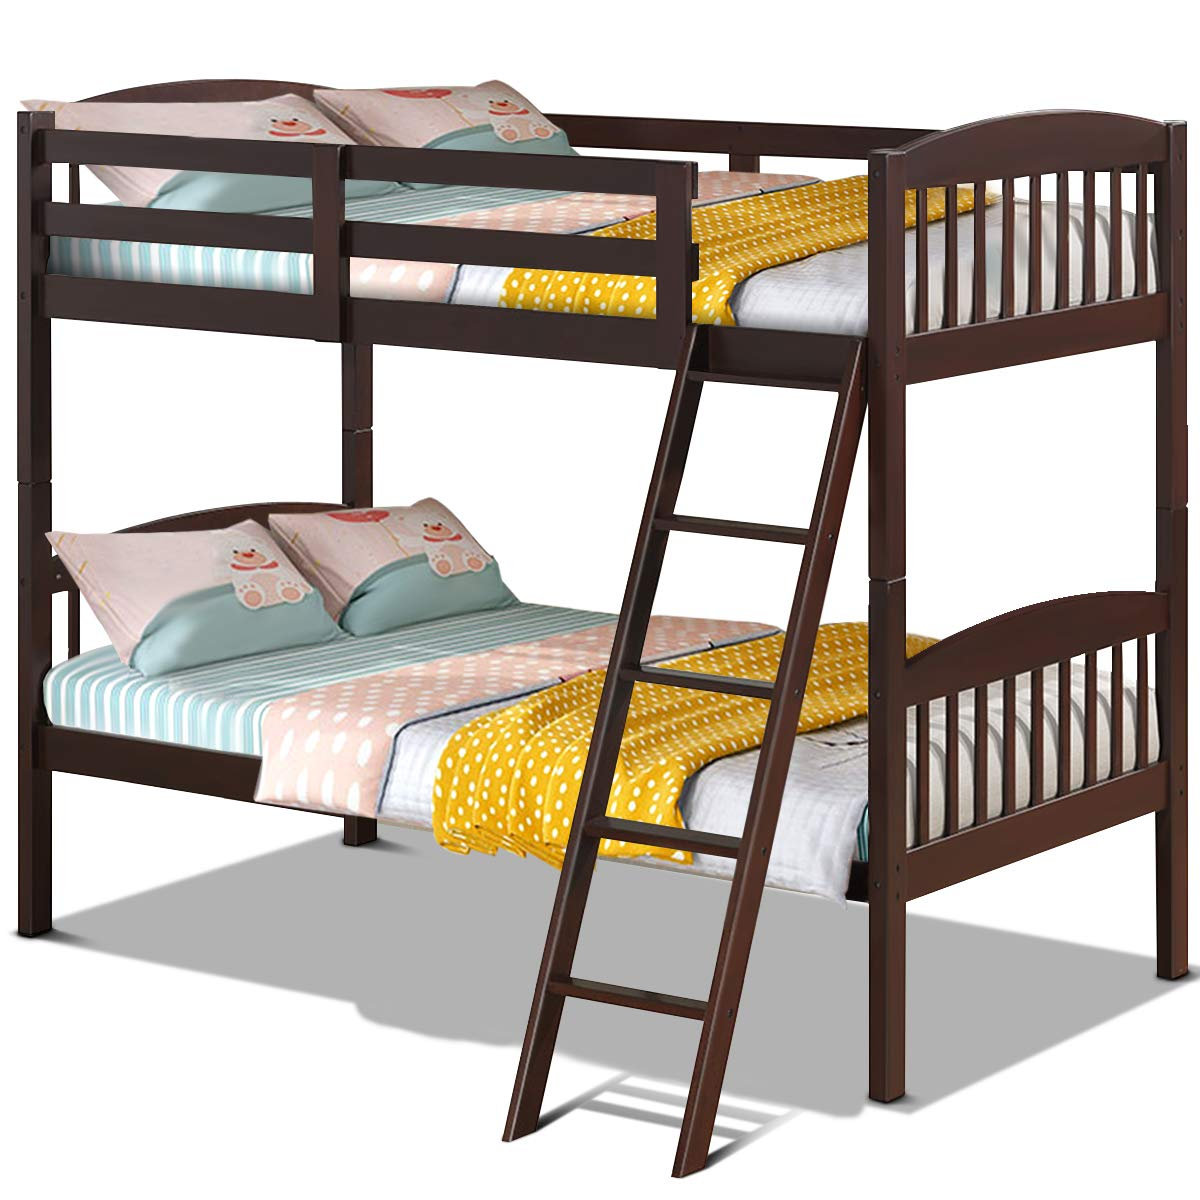 Costzon Twin Over Twin Bunk Beds, Convertible Into Two Individual Solid Wood Beds, Children Twin Sleeping Bedroom Furniture W/Ladder and Safety Rail for Kids Boys & Girls (Espresso)